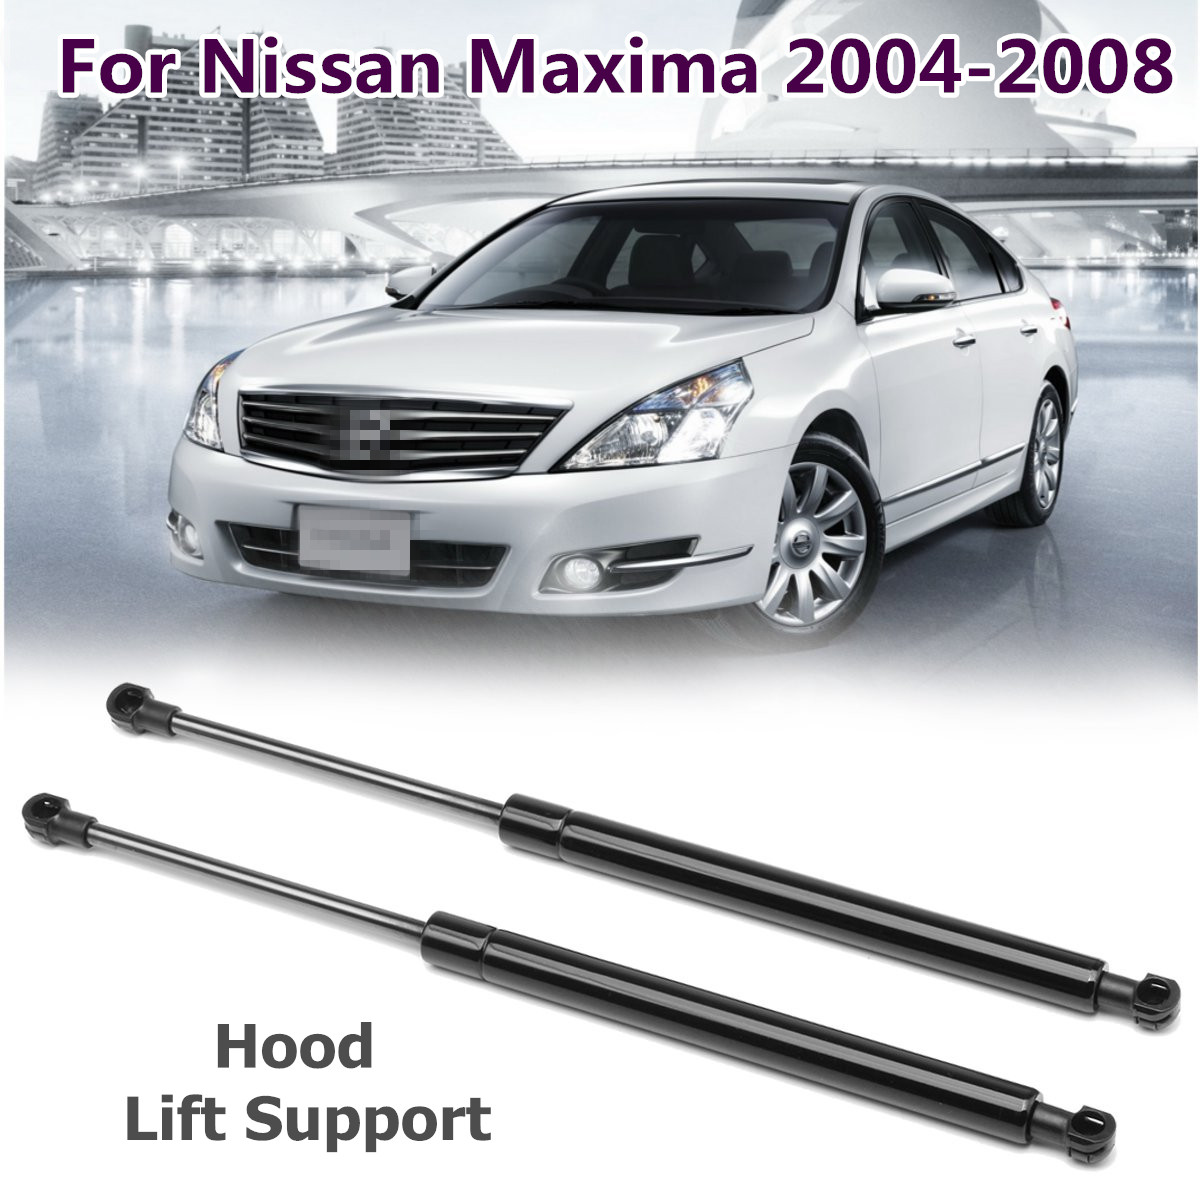 2Qty Rear Trunk Shock Spring Lift Support Prop Strut For Nissan Maxima 2004-2008